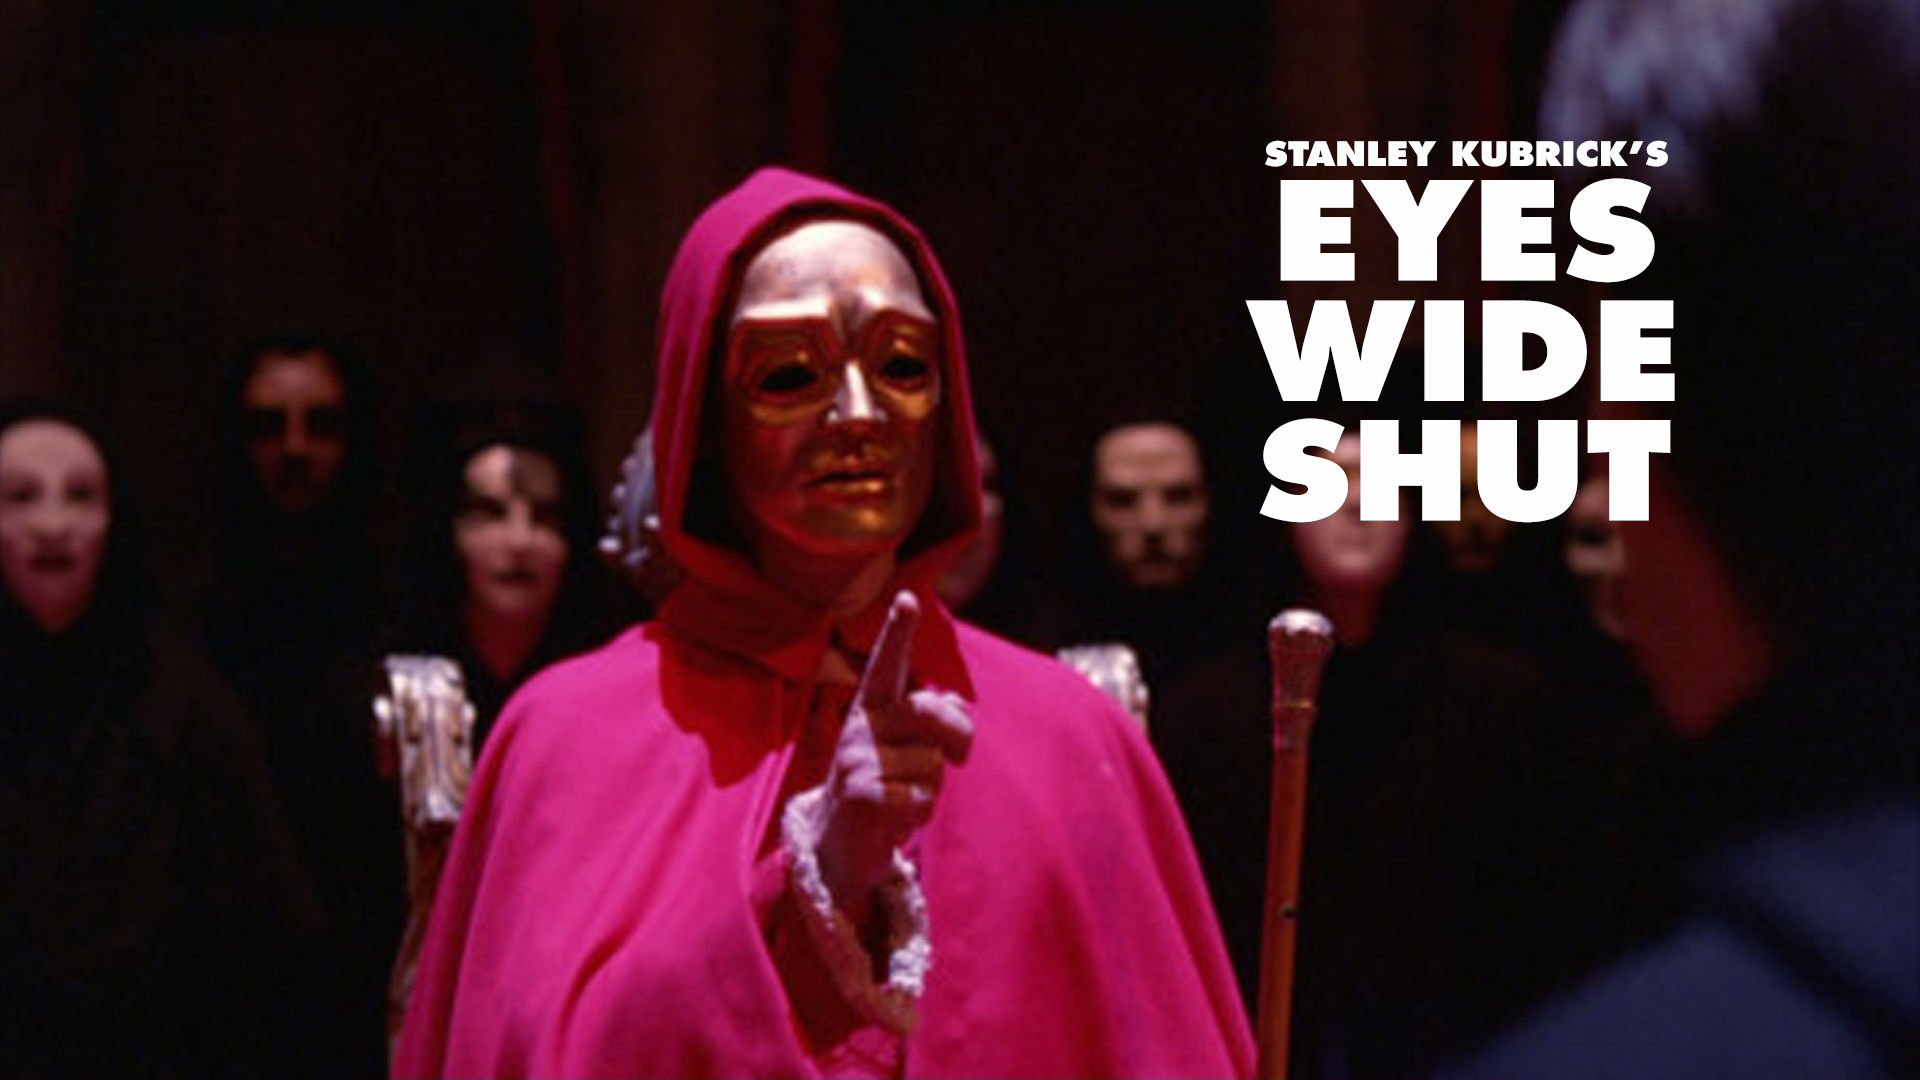 Stanley Kubrick's Eyes Wide Shut